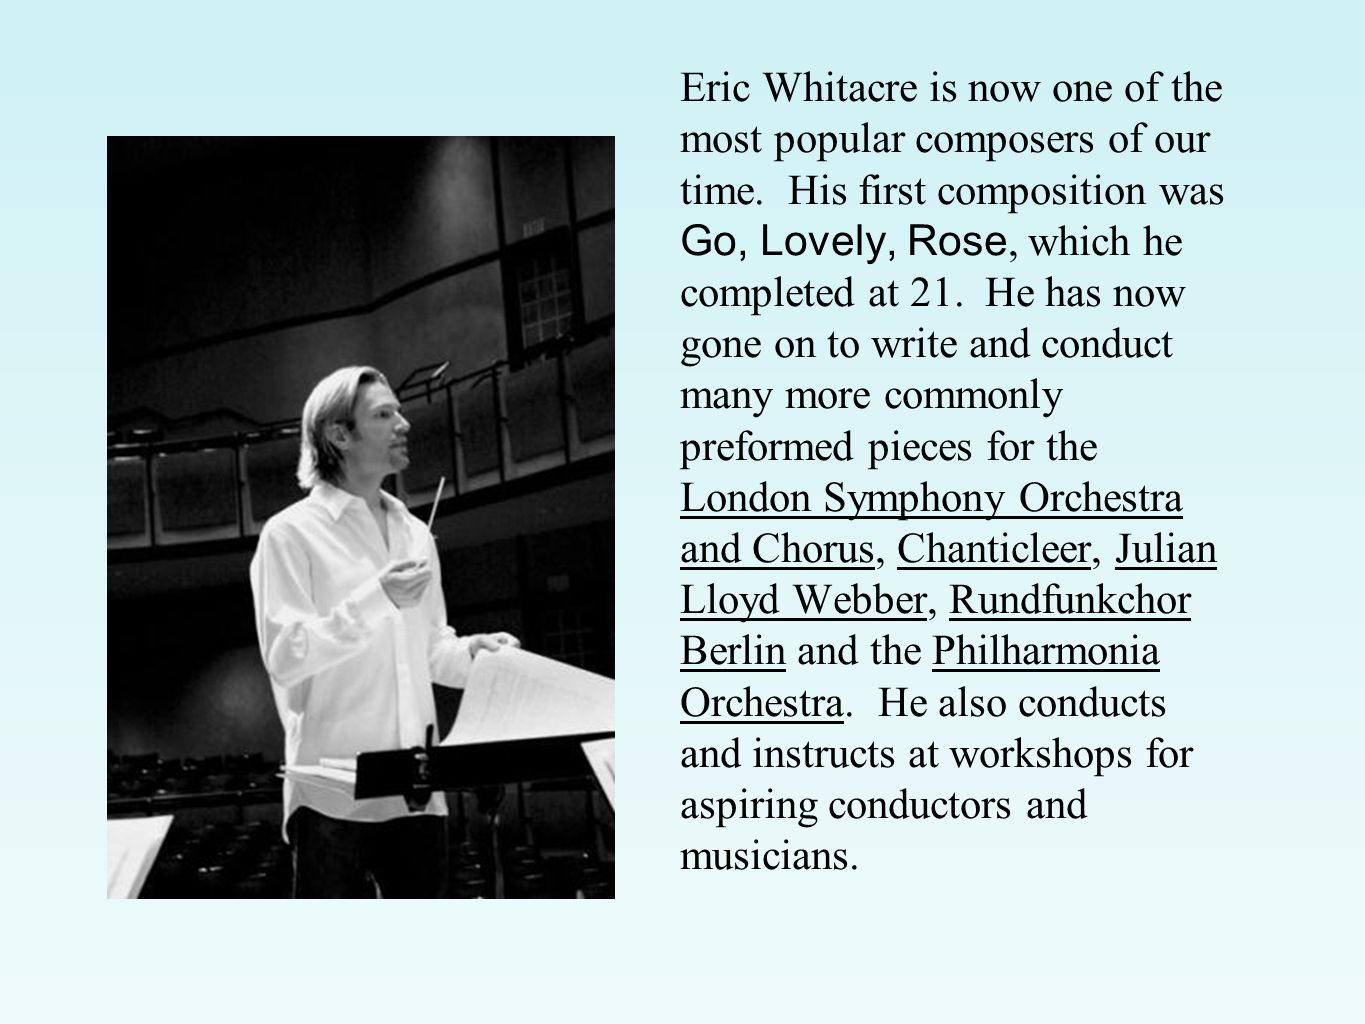 Eric Whitacre is now one of the most popular composers of our time. His first composition was Go, Lovely, Rose, which he completed at 21. He has now g